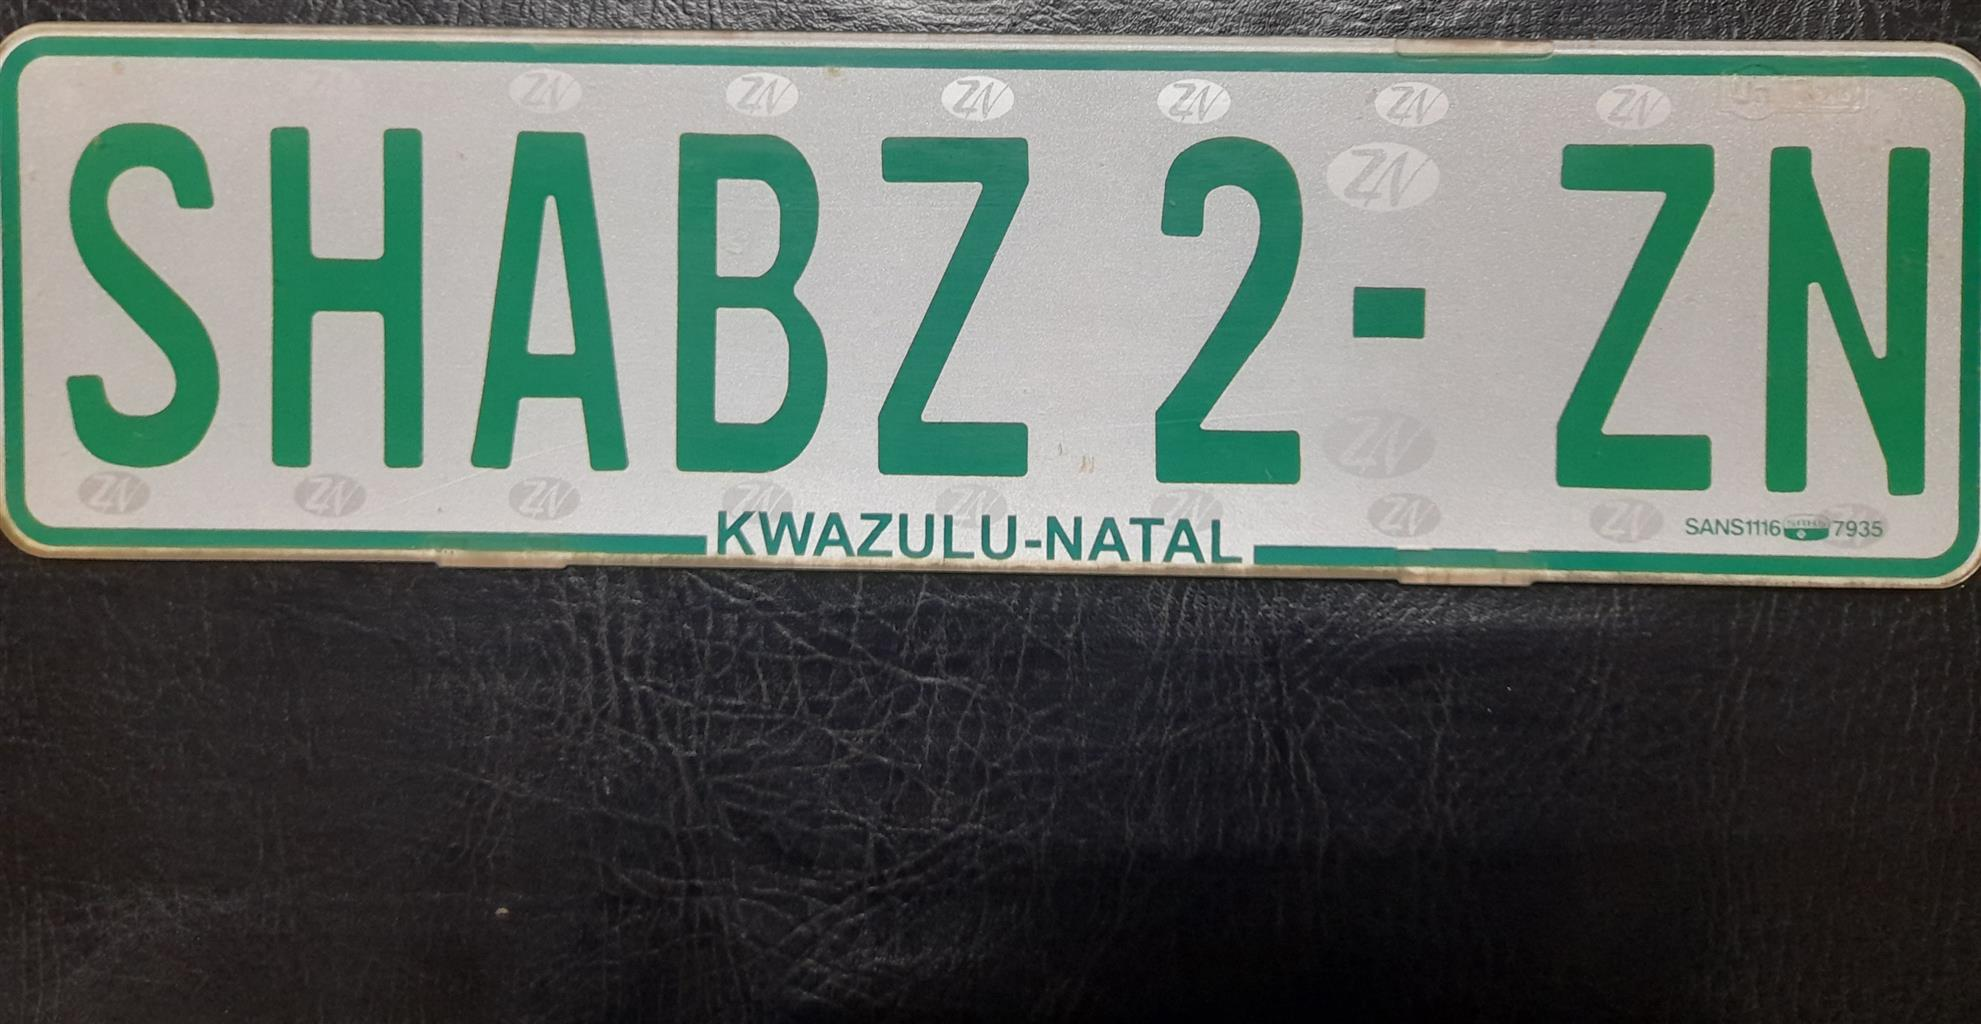 Personalized plates for sale